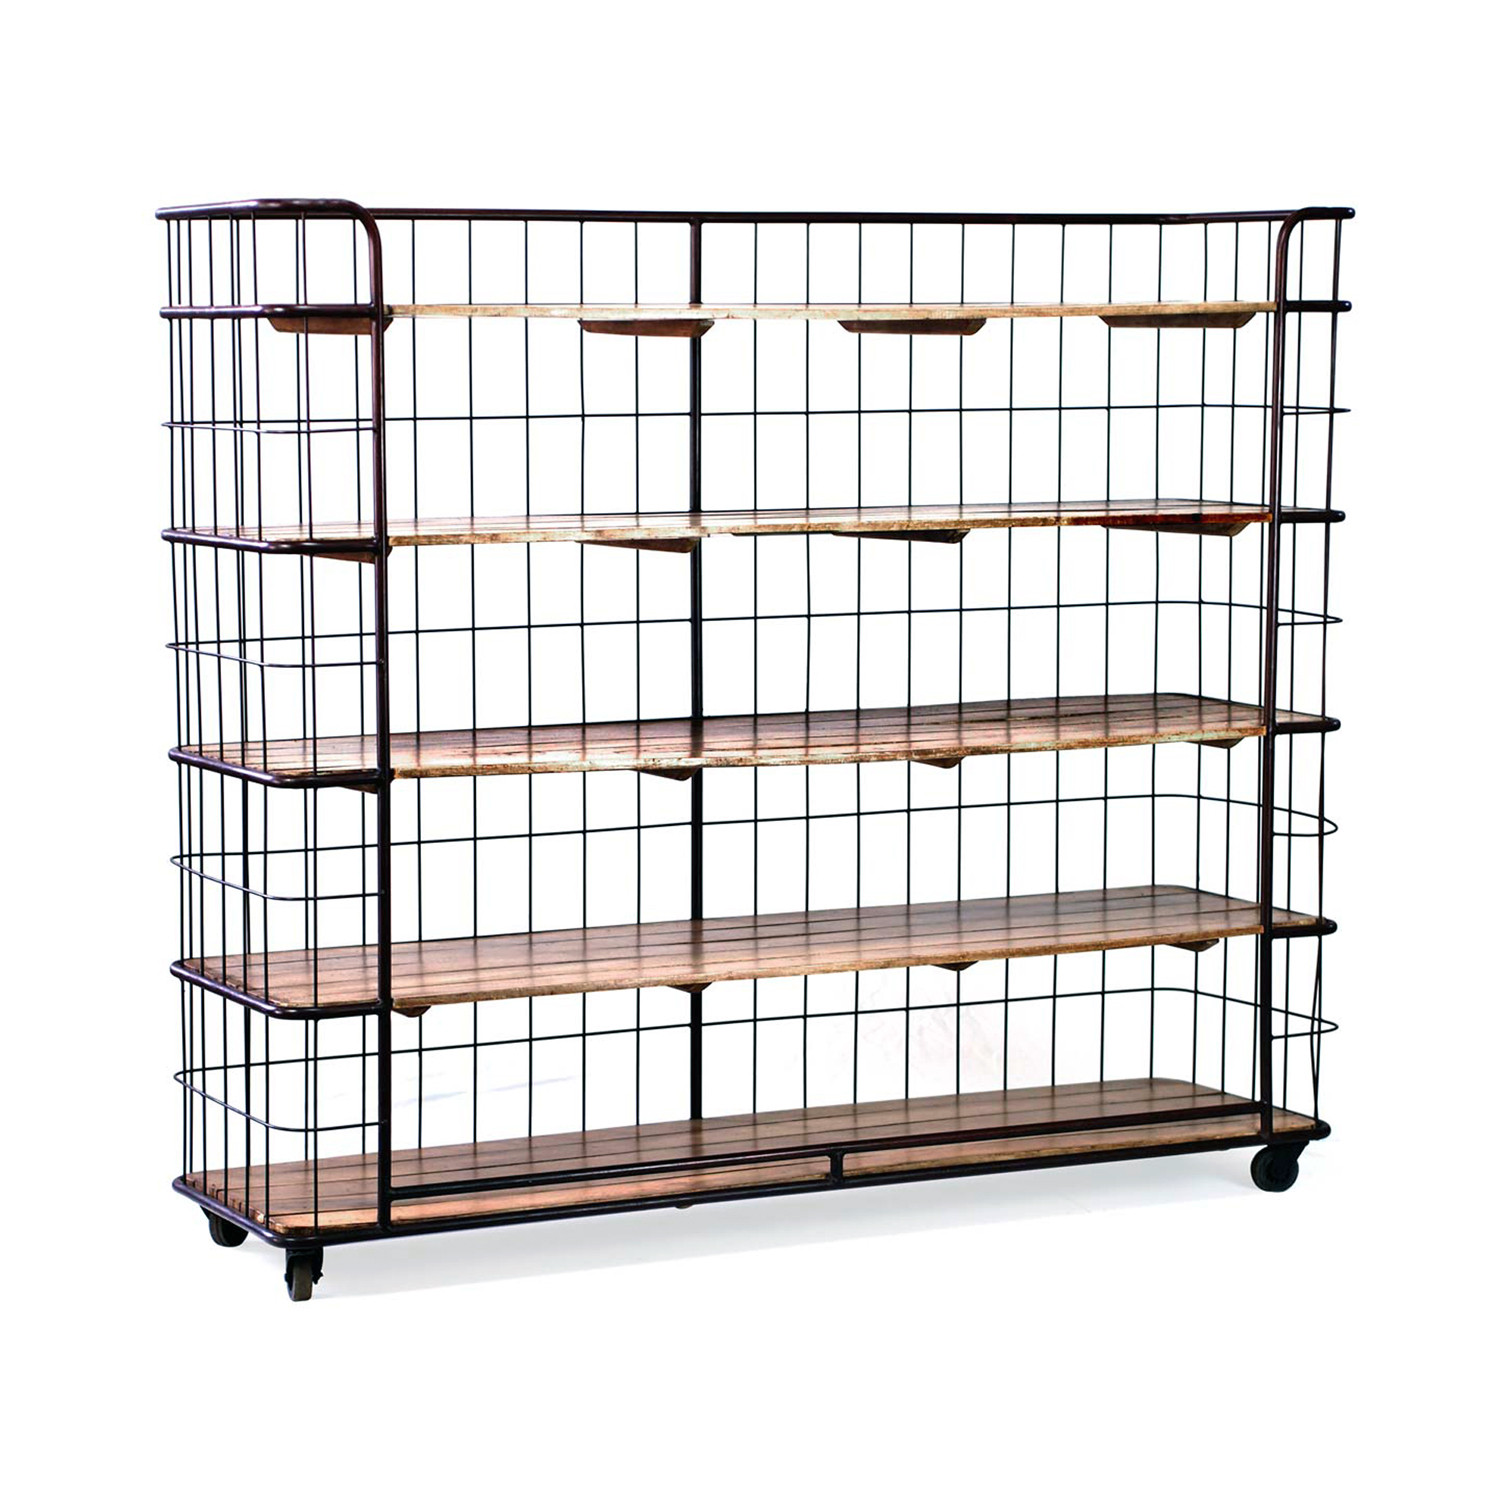 Biarritz Five Tier Industrial Bakeru0027s Rack (Large)